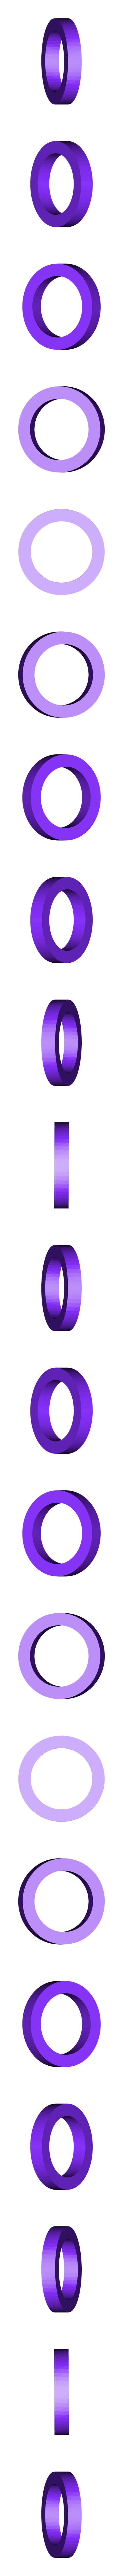 OpenRC_F1_250scaled_-_61806_Bearing_30-1.STL Download free STL file OpenRC F1 250% scaled • 3D printable model, colorFabb